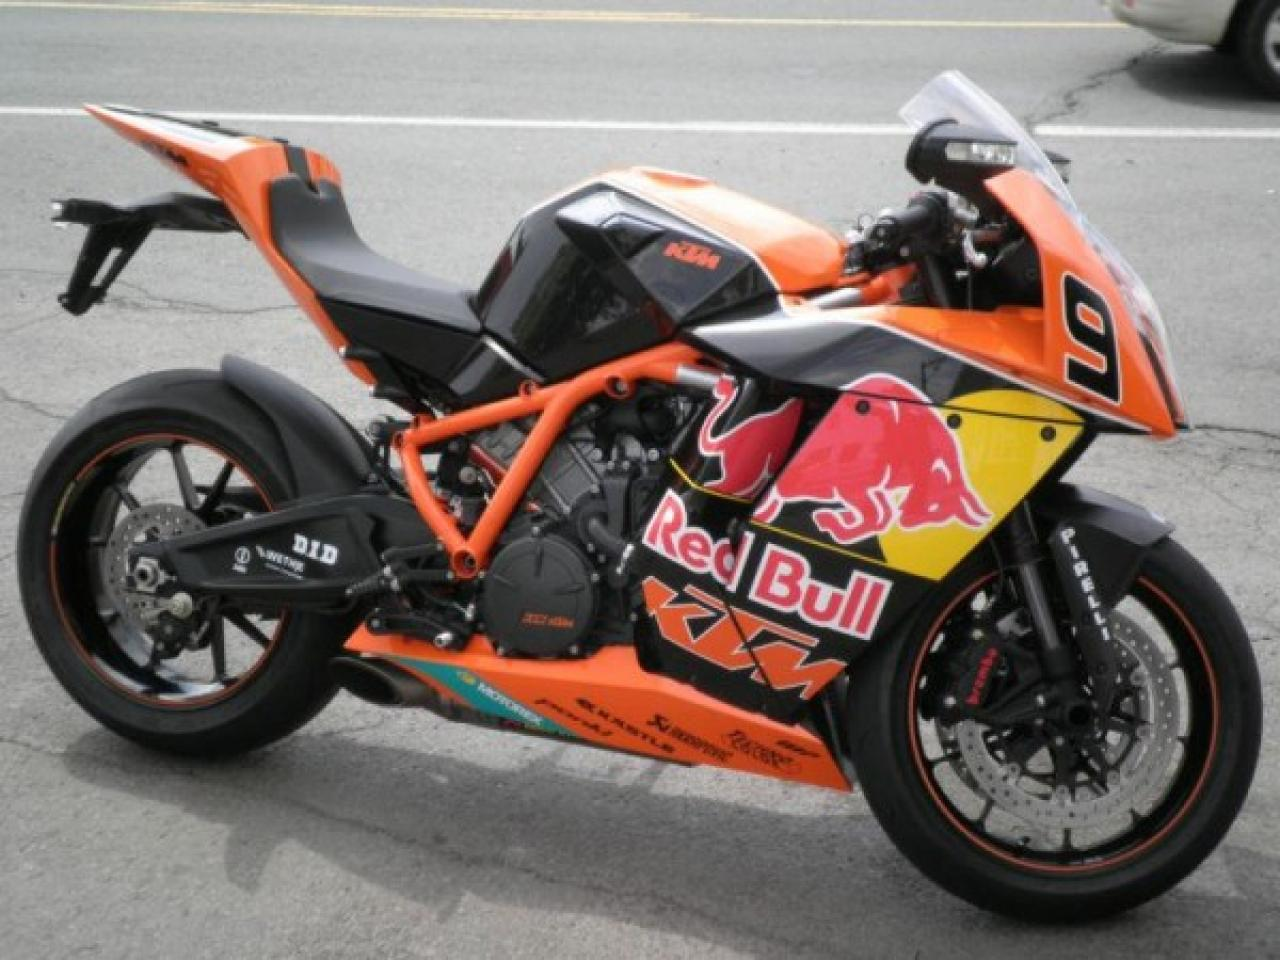 KTM 1190 RC8 R Red Bull Limited Edition 2010 images #86761